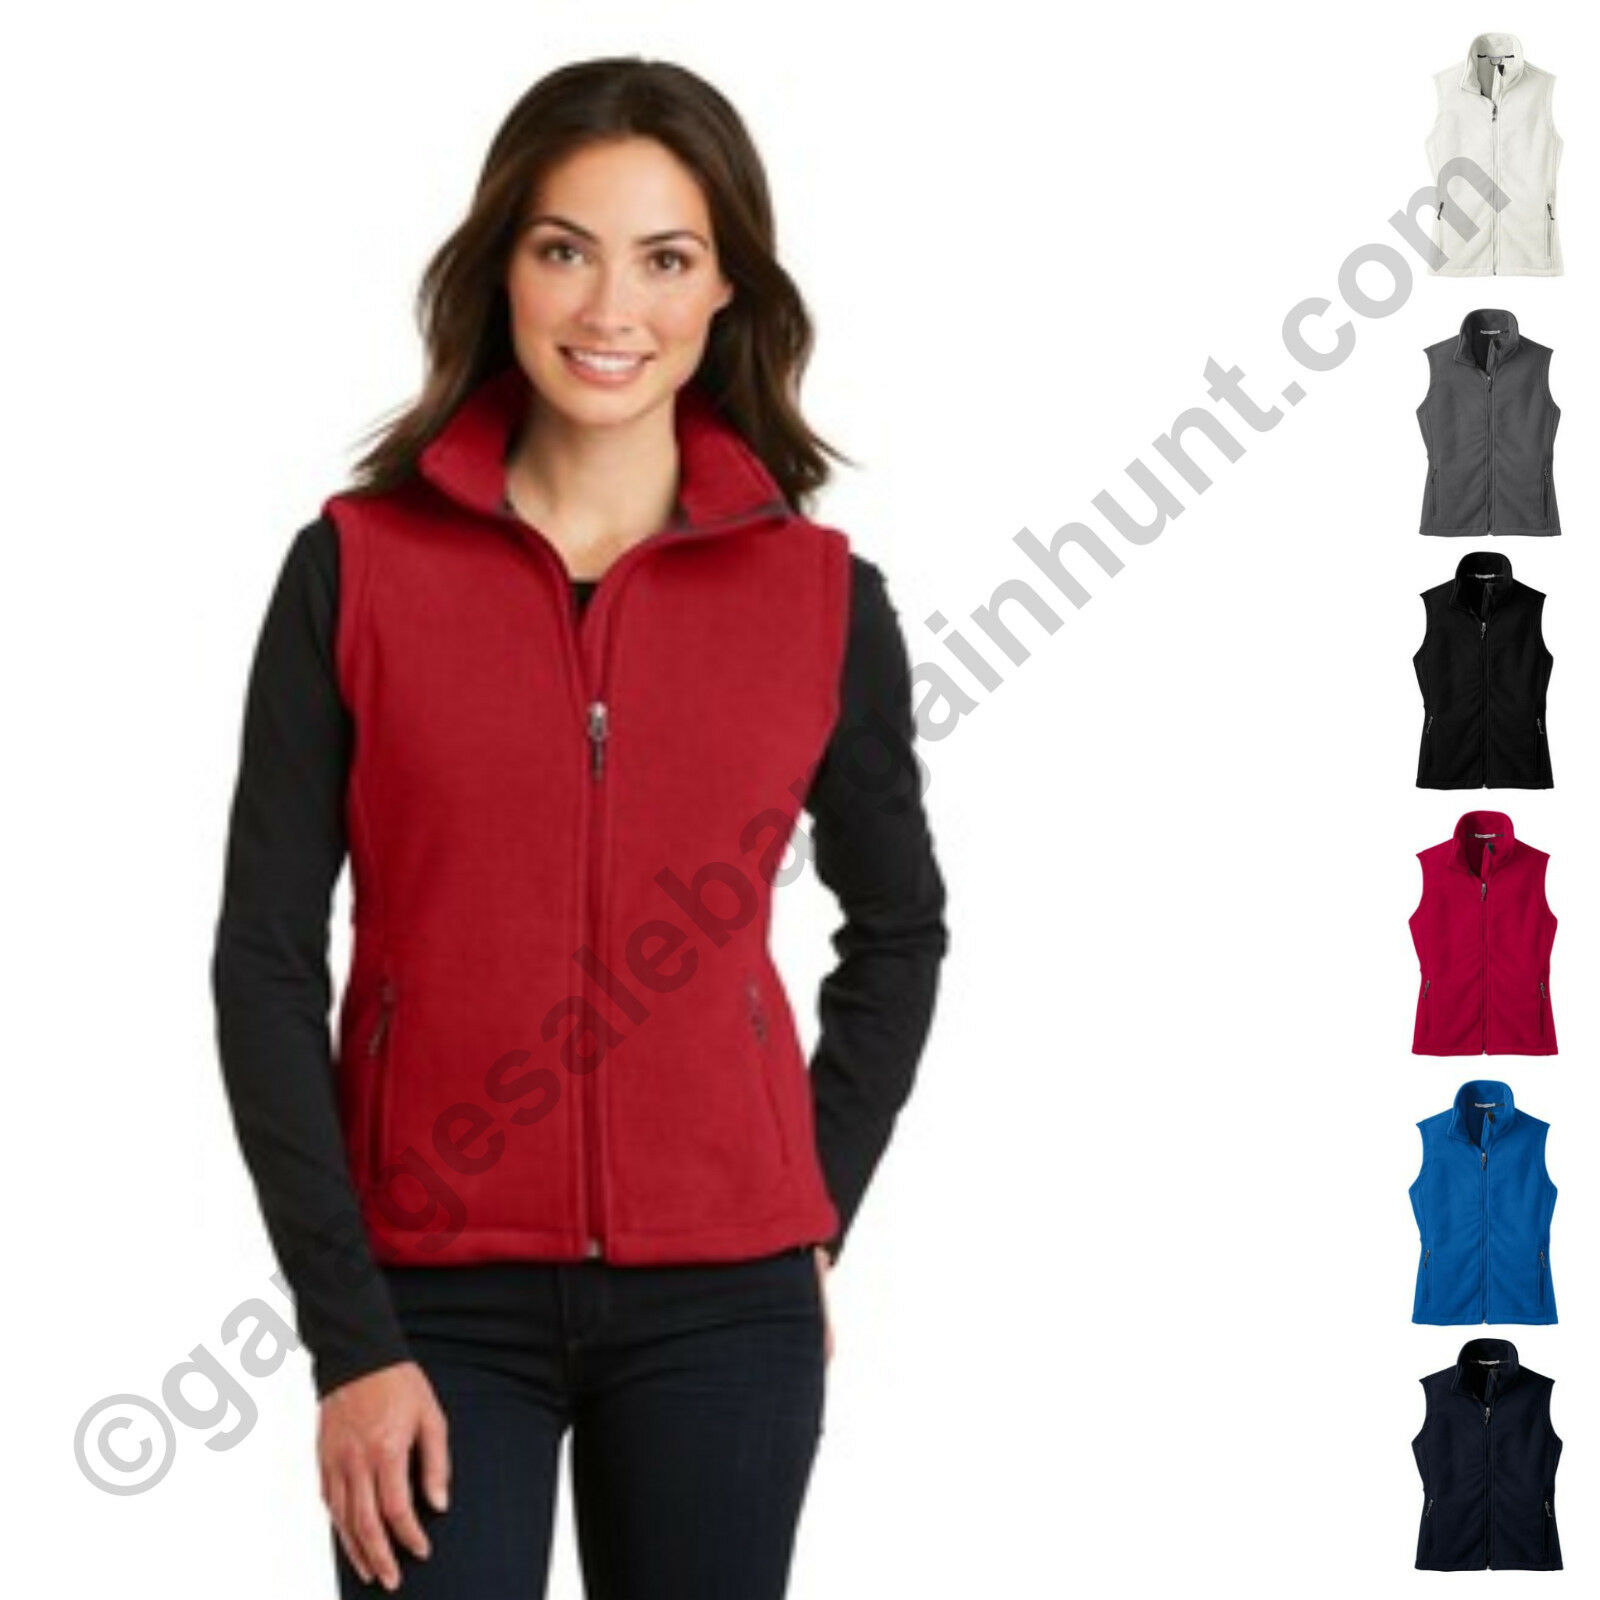 Port Authority Womens Fleece Vest Clothing Fall Winter XS-2X